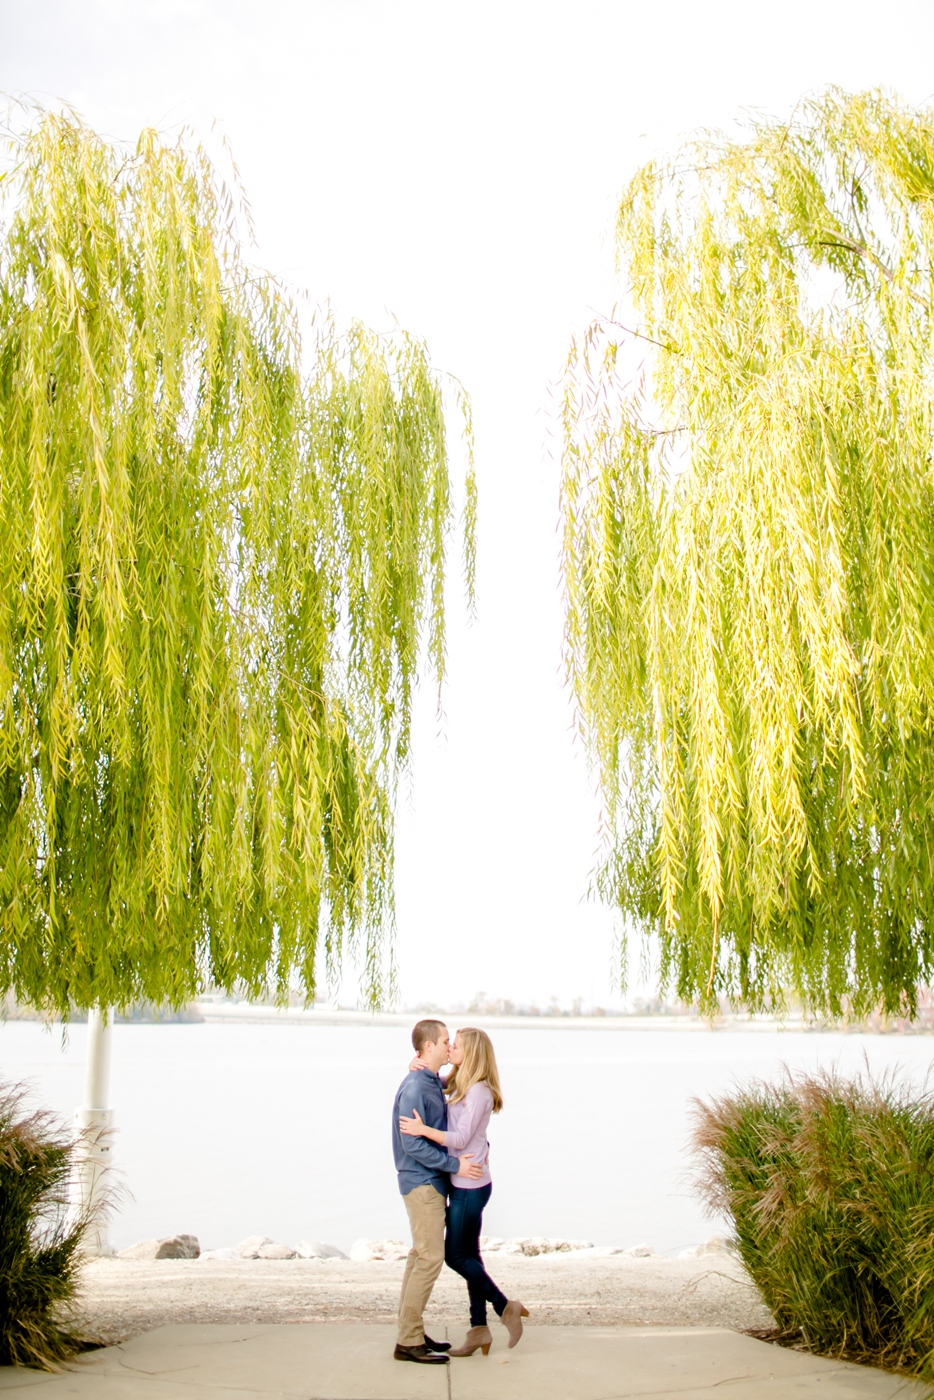 32A-National-Harbor-Engagement-Session-Photographer-1069